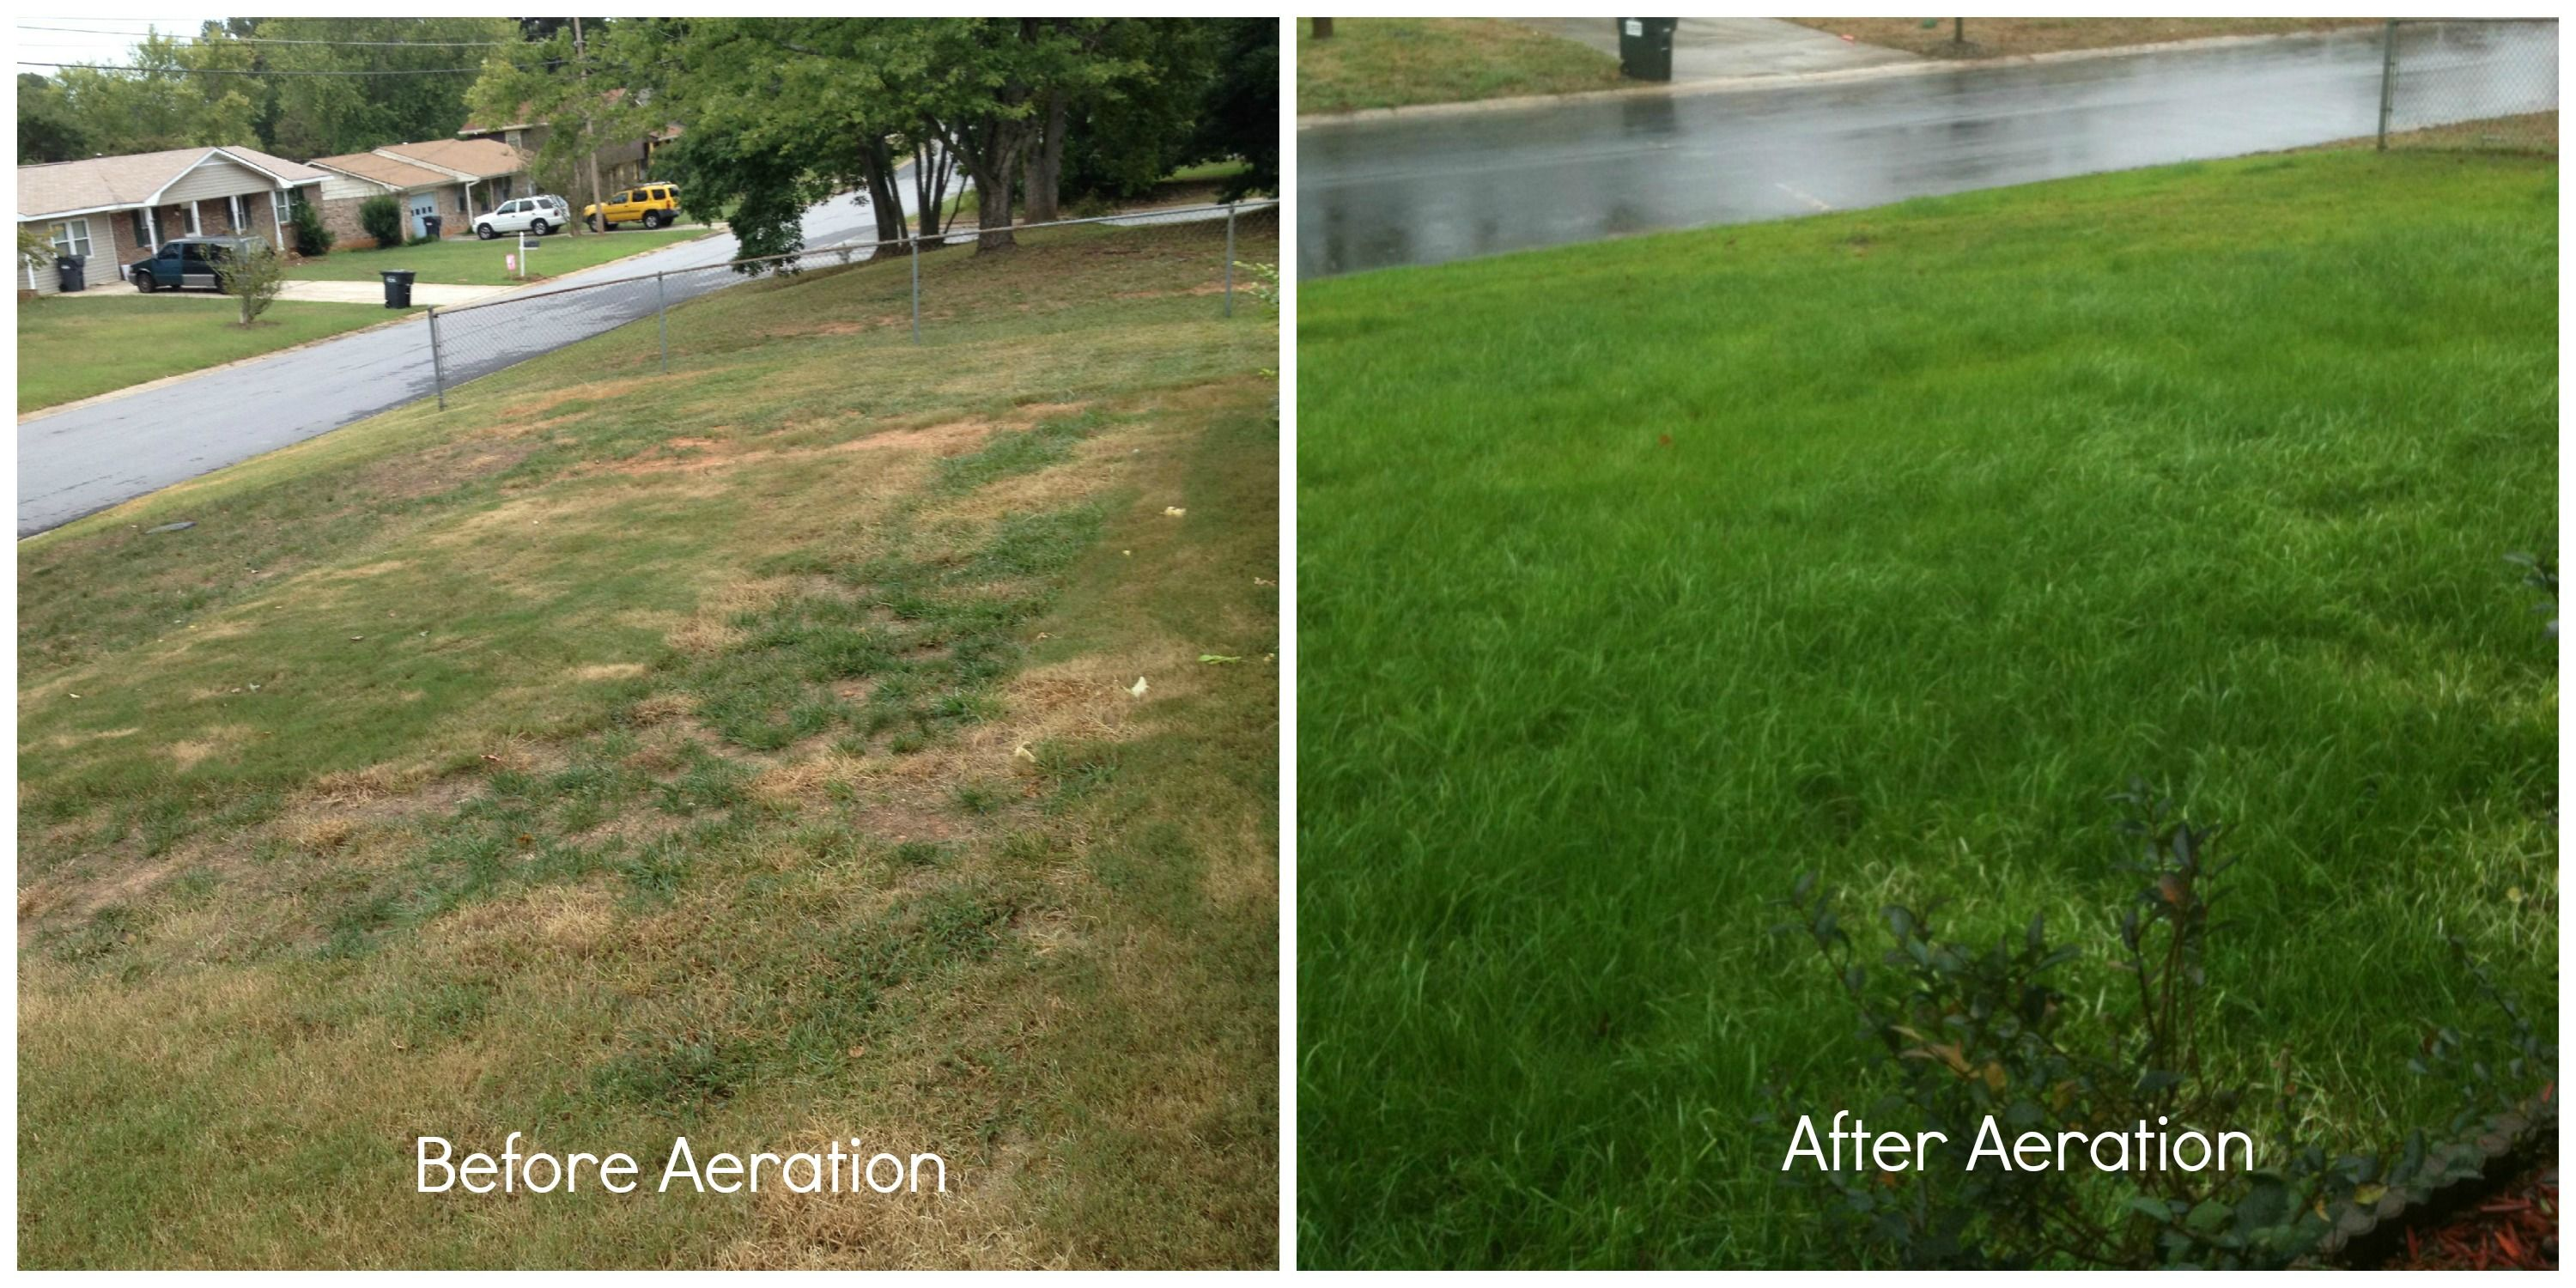 Aerating Your Lawn Is Important For The Roots To Be Strong And